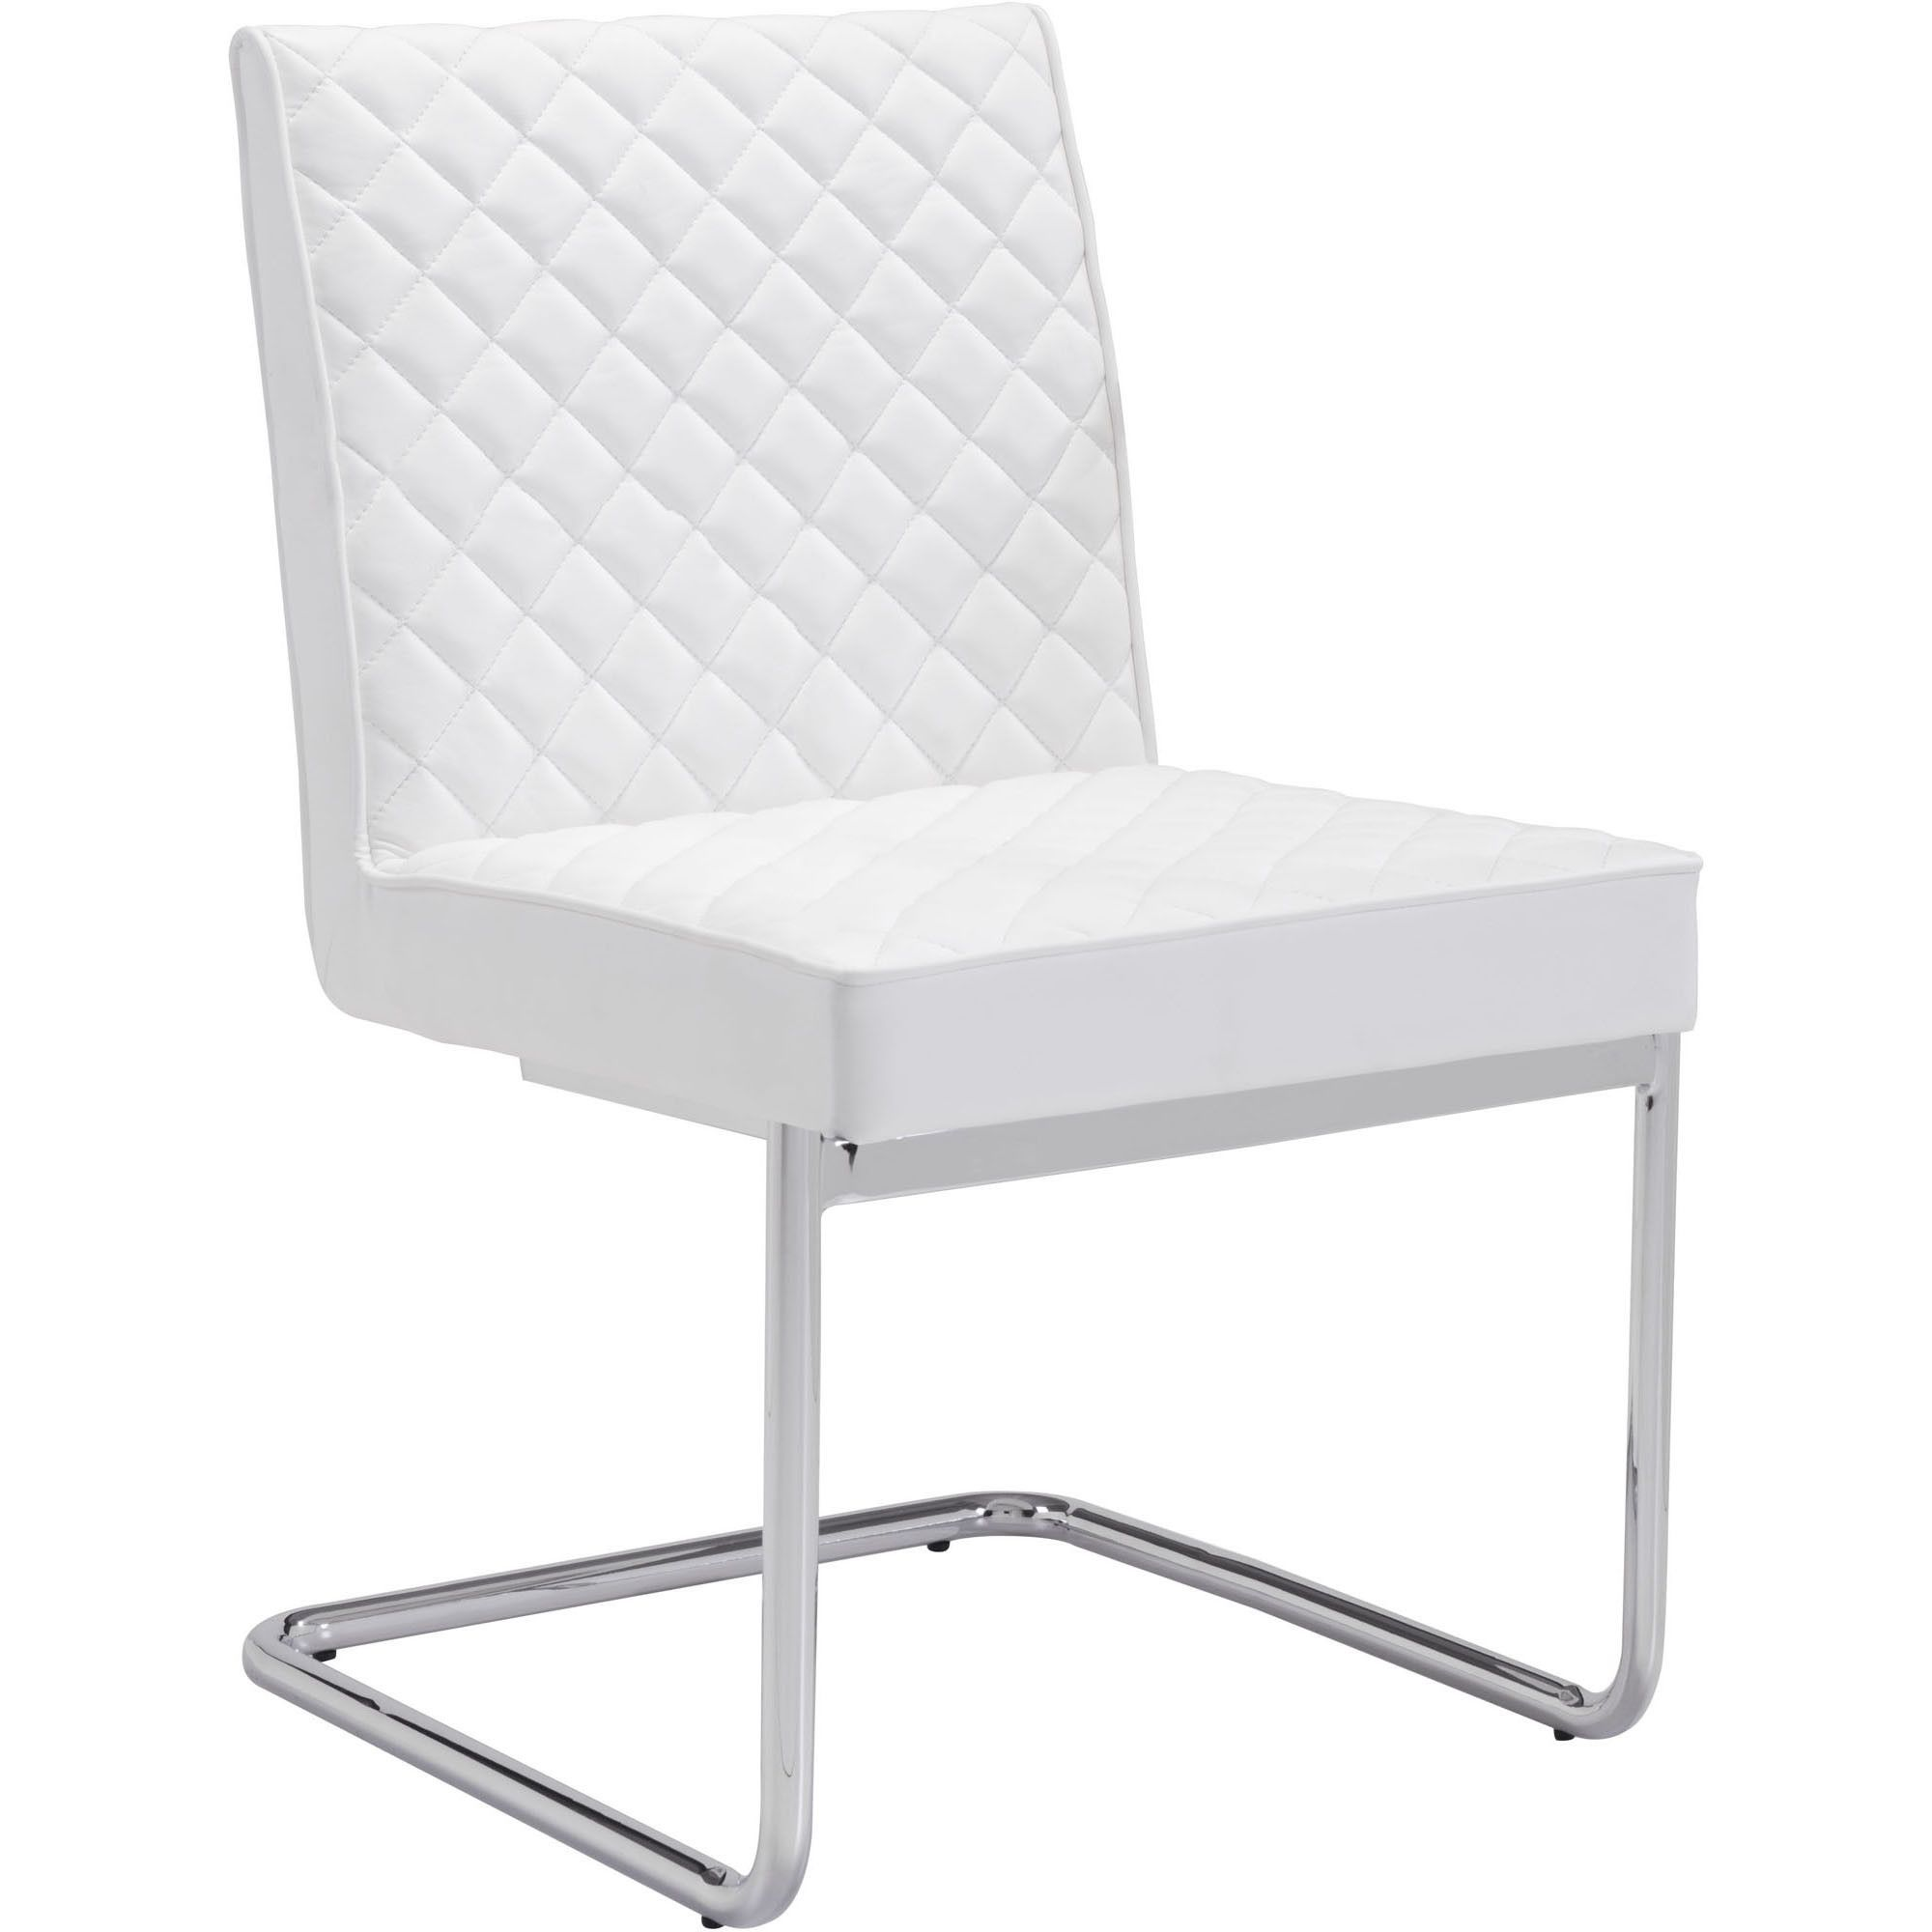 Quilt Armless Dining Chair White (Set of 2) Faux leather